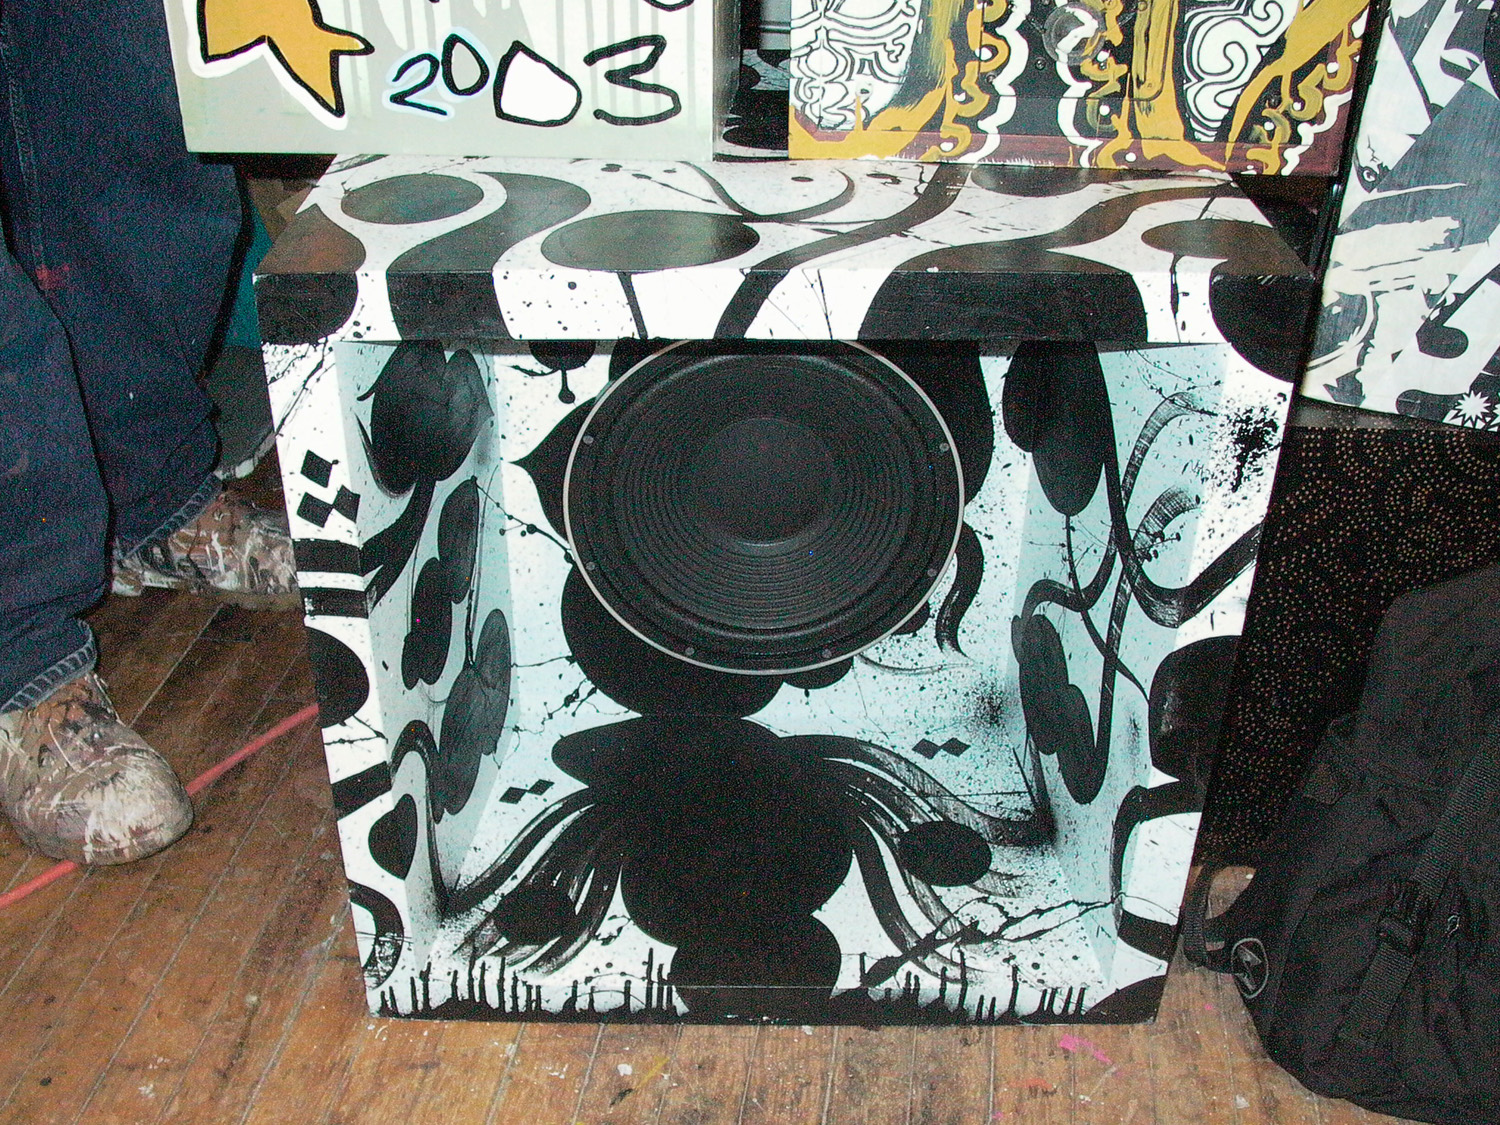 installation view,  Barnstormers:   Hive Mind Soundsystem   Lump Gallery  Raleigh, NC, 2003